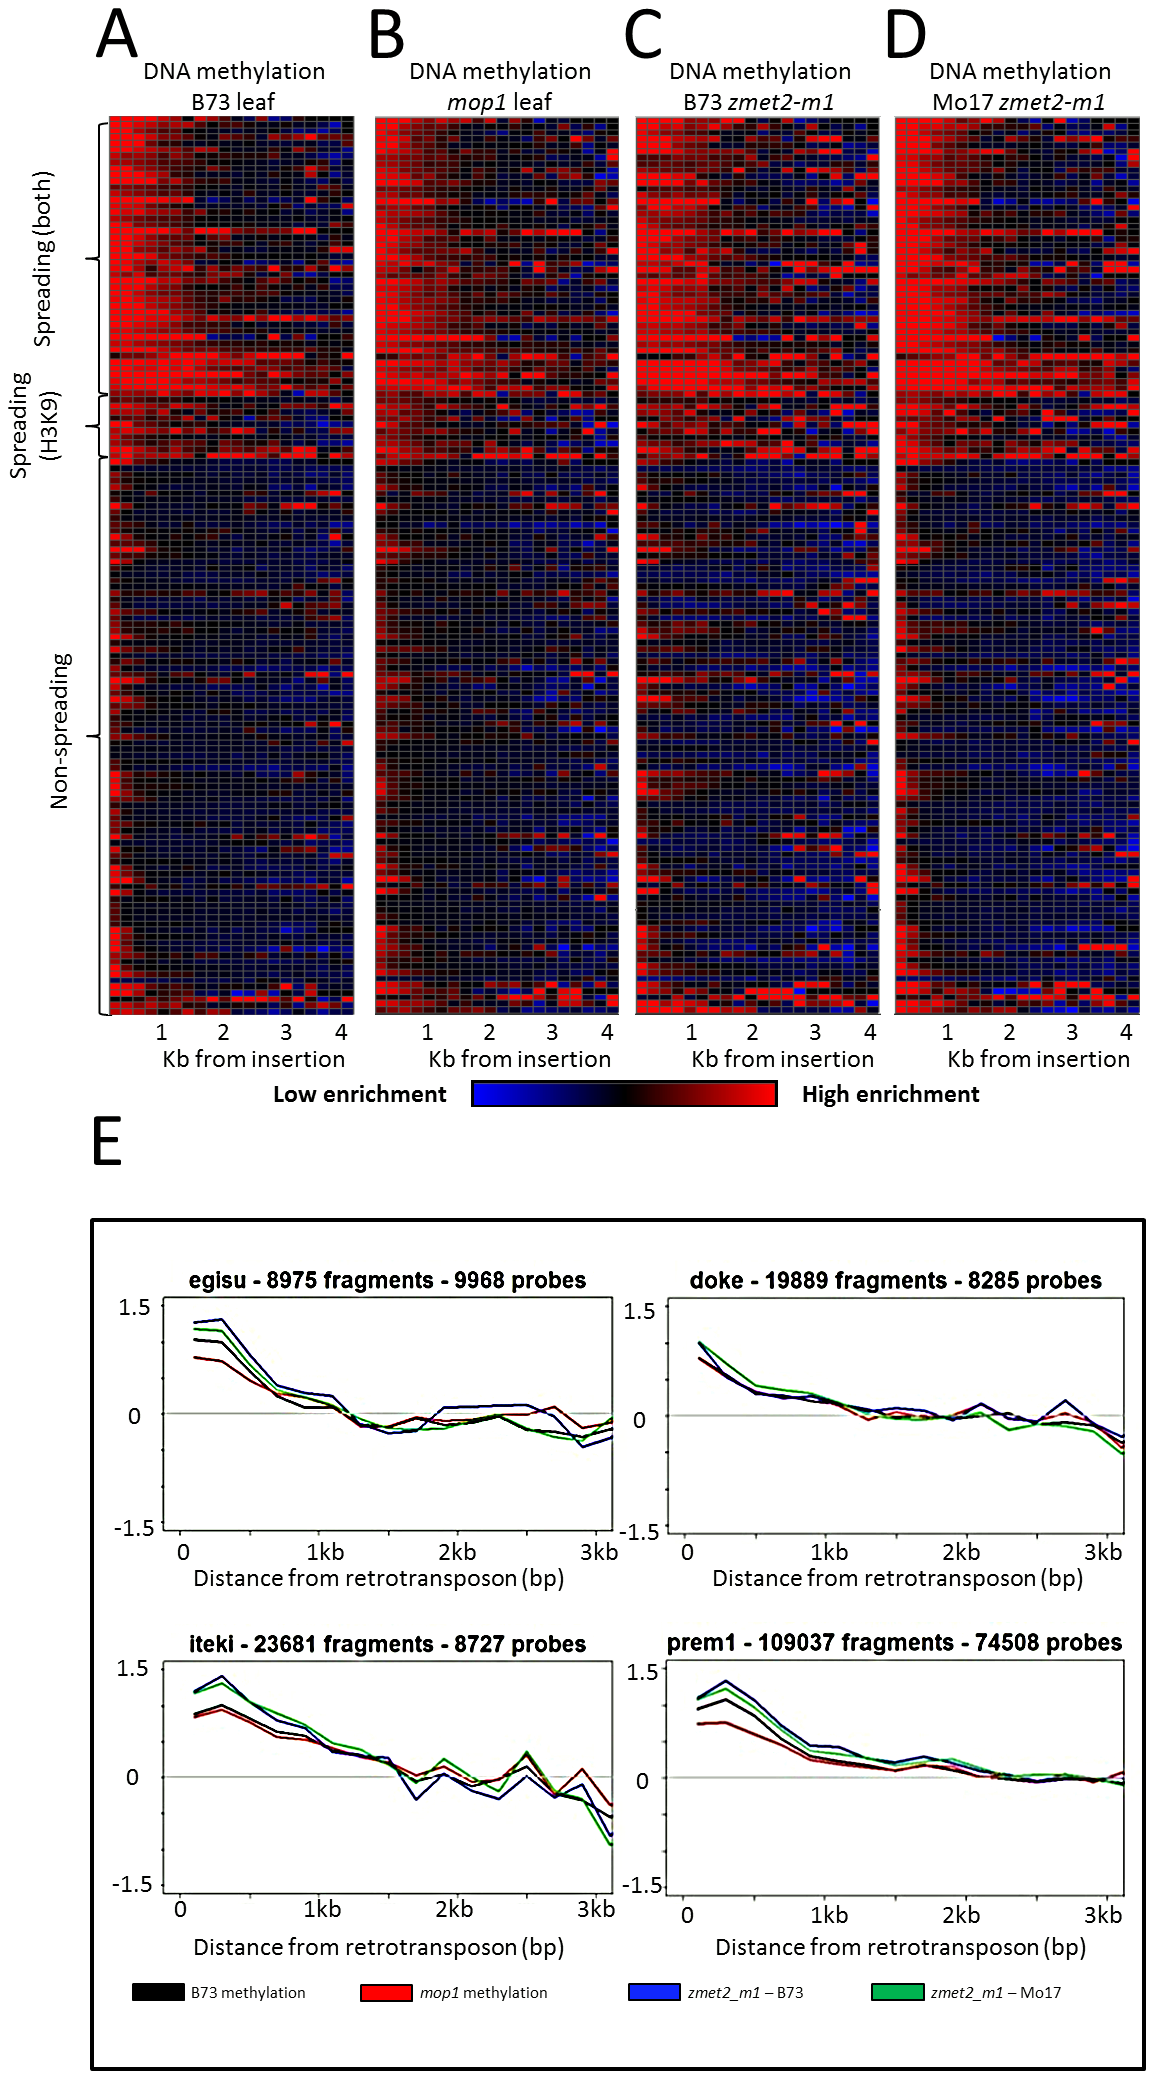 DNA methylation enrichment near retrotransposons is not affected by mop1 or zmet2-m1 mutations.